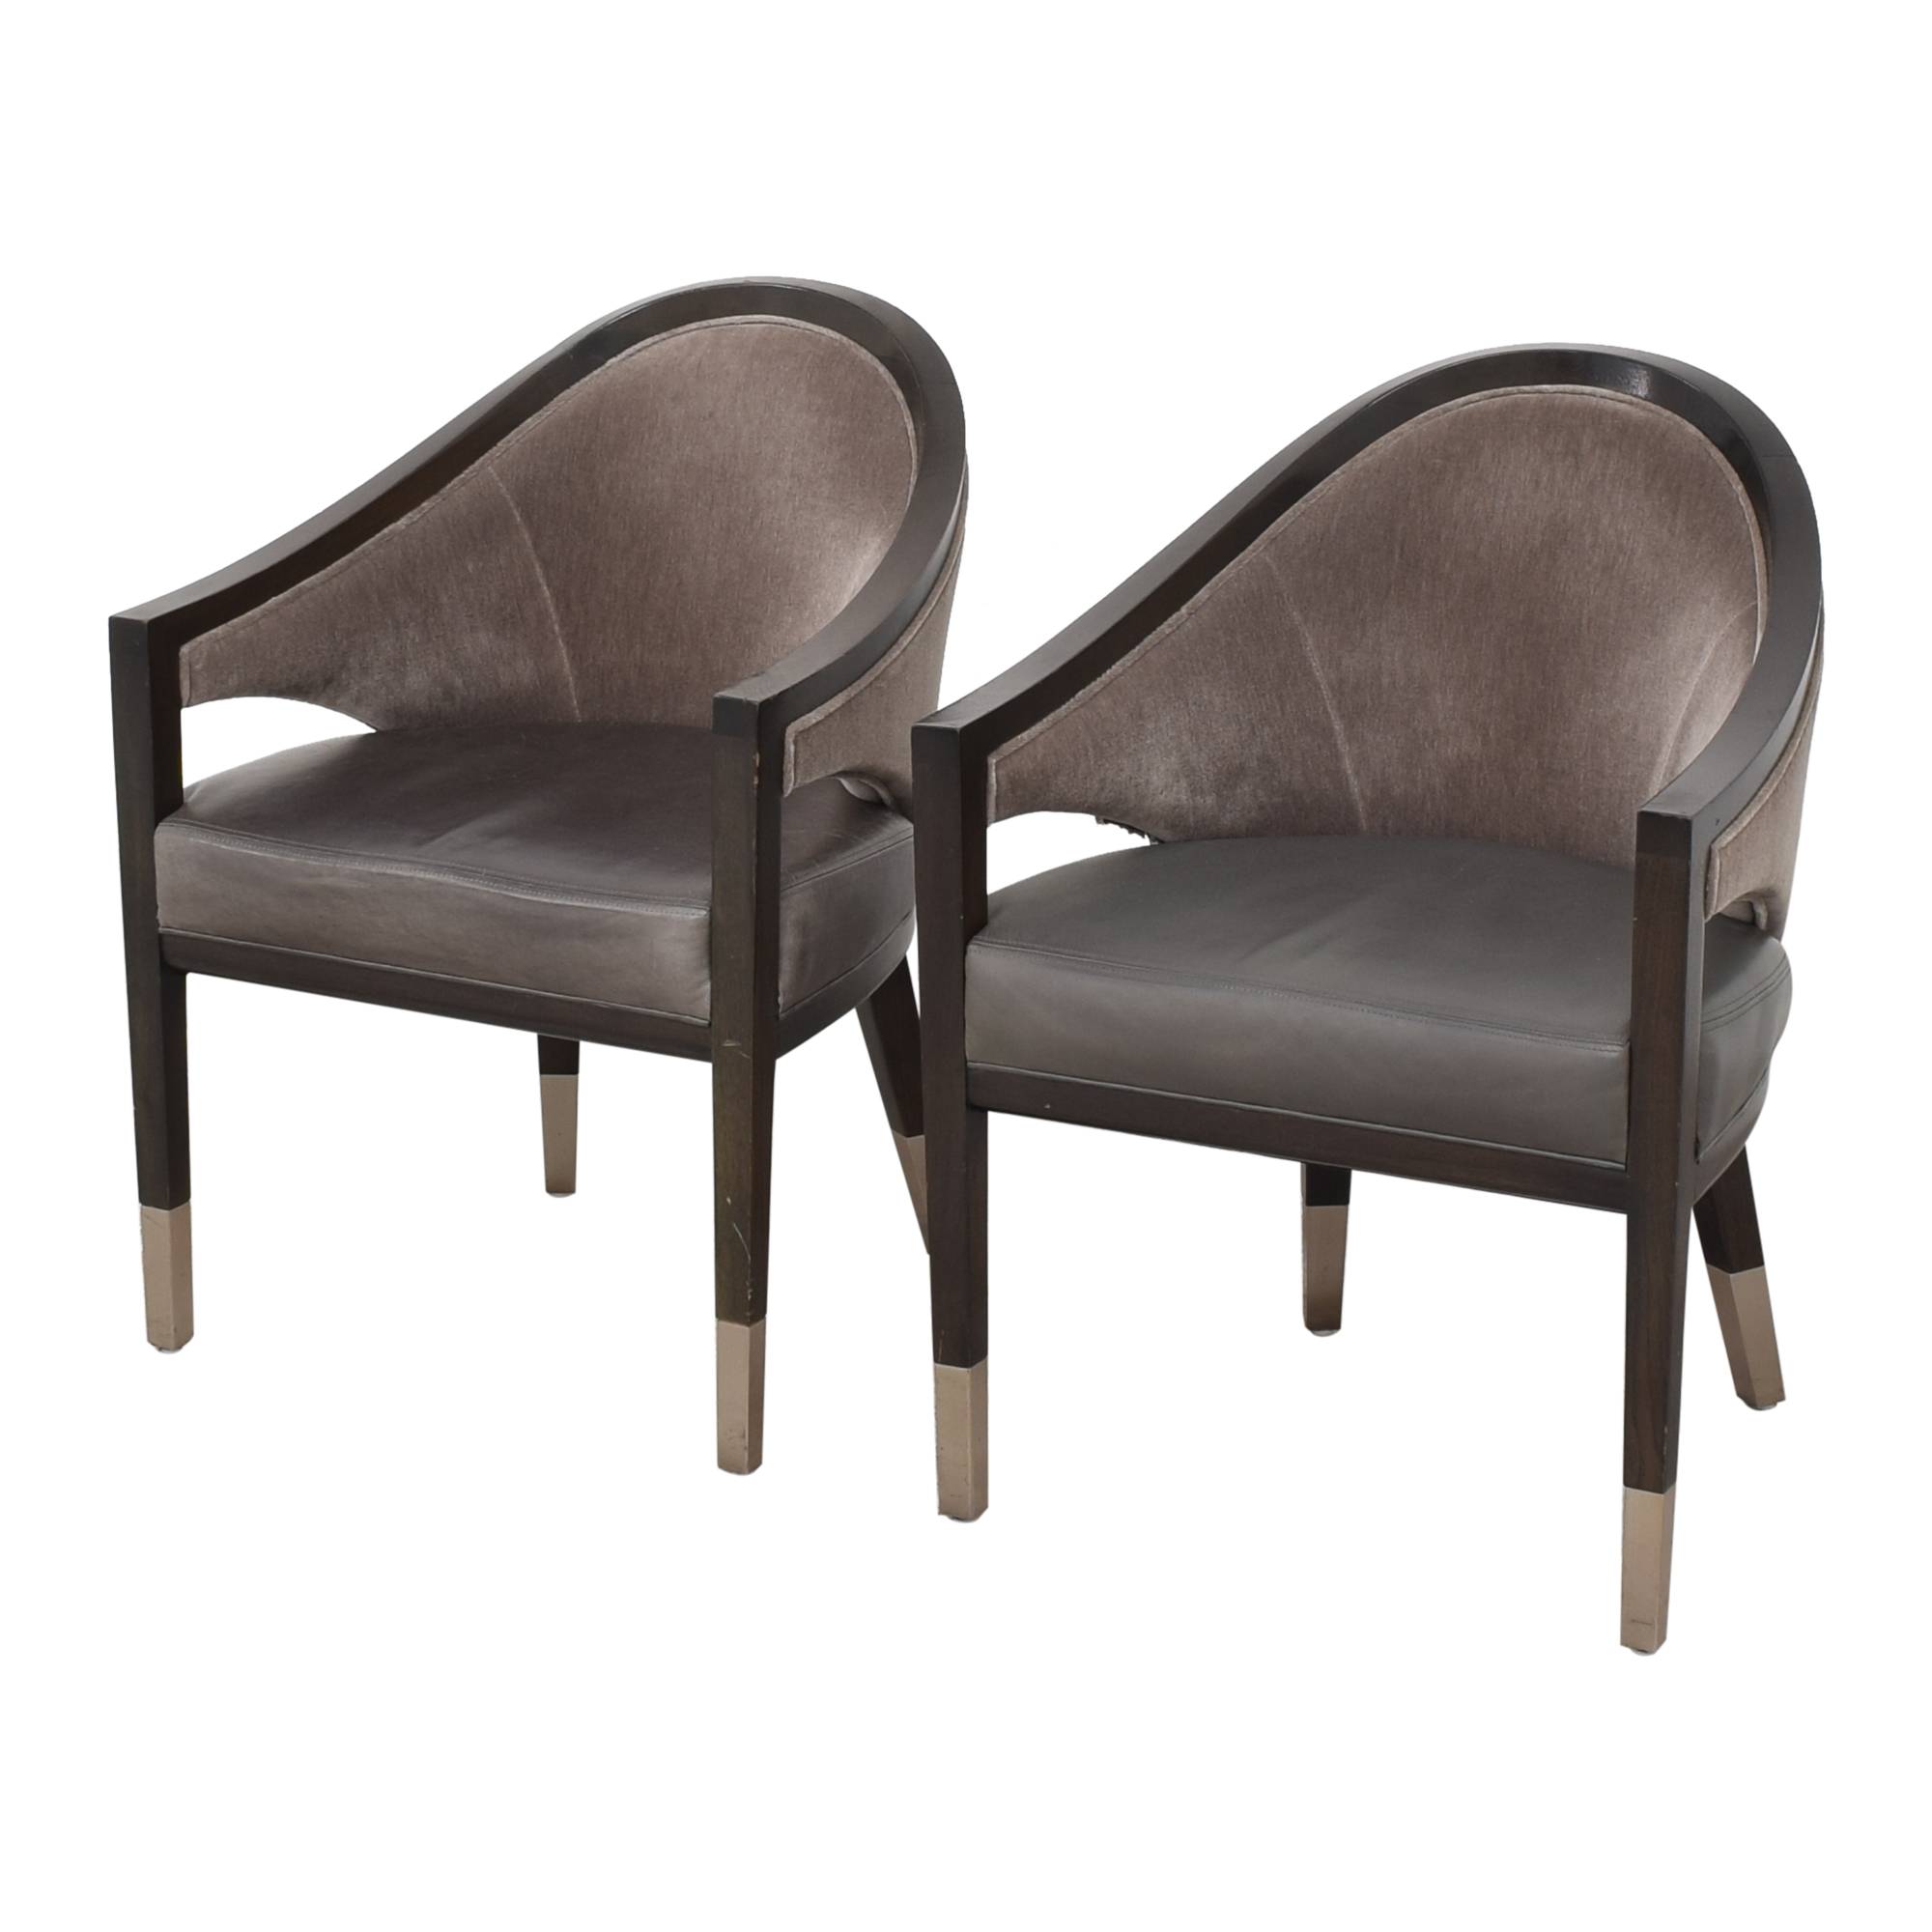 Allied Form Works Allied Works Eleven Madison Park Dining Room Chairs nj